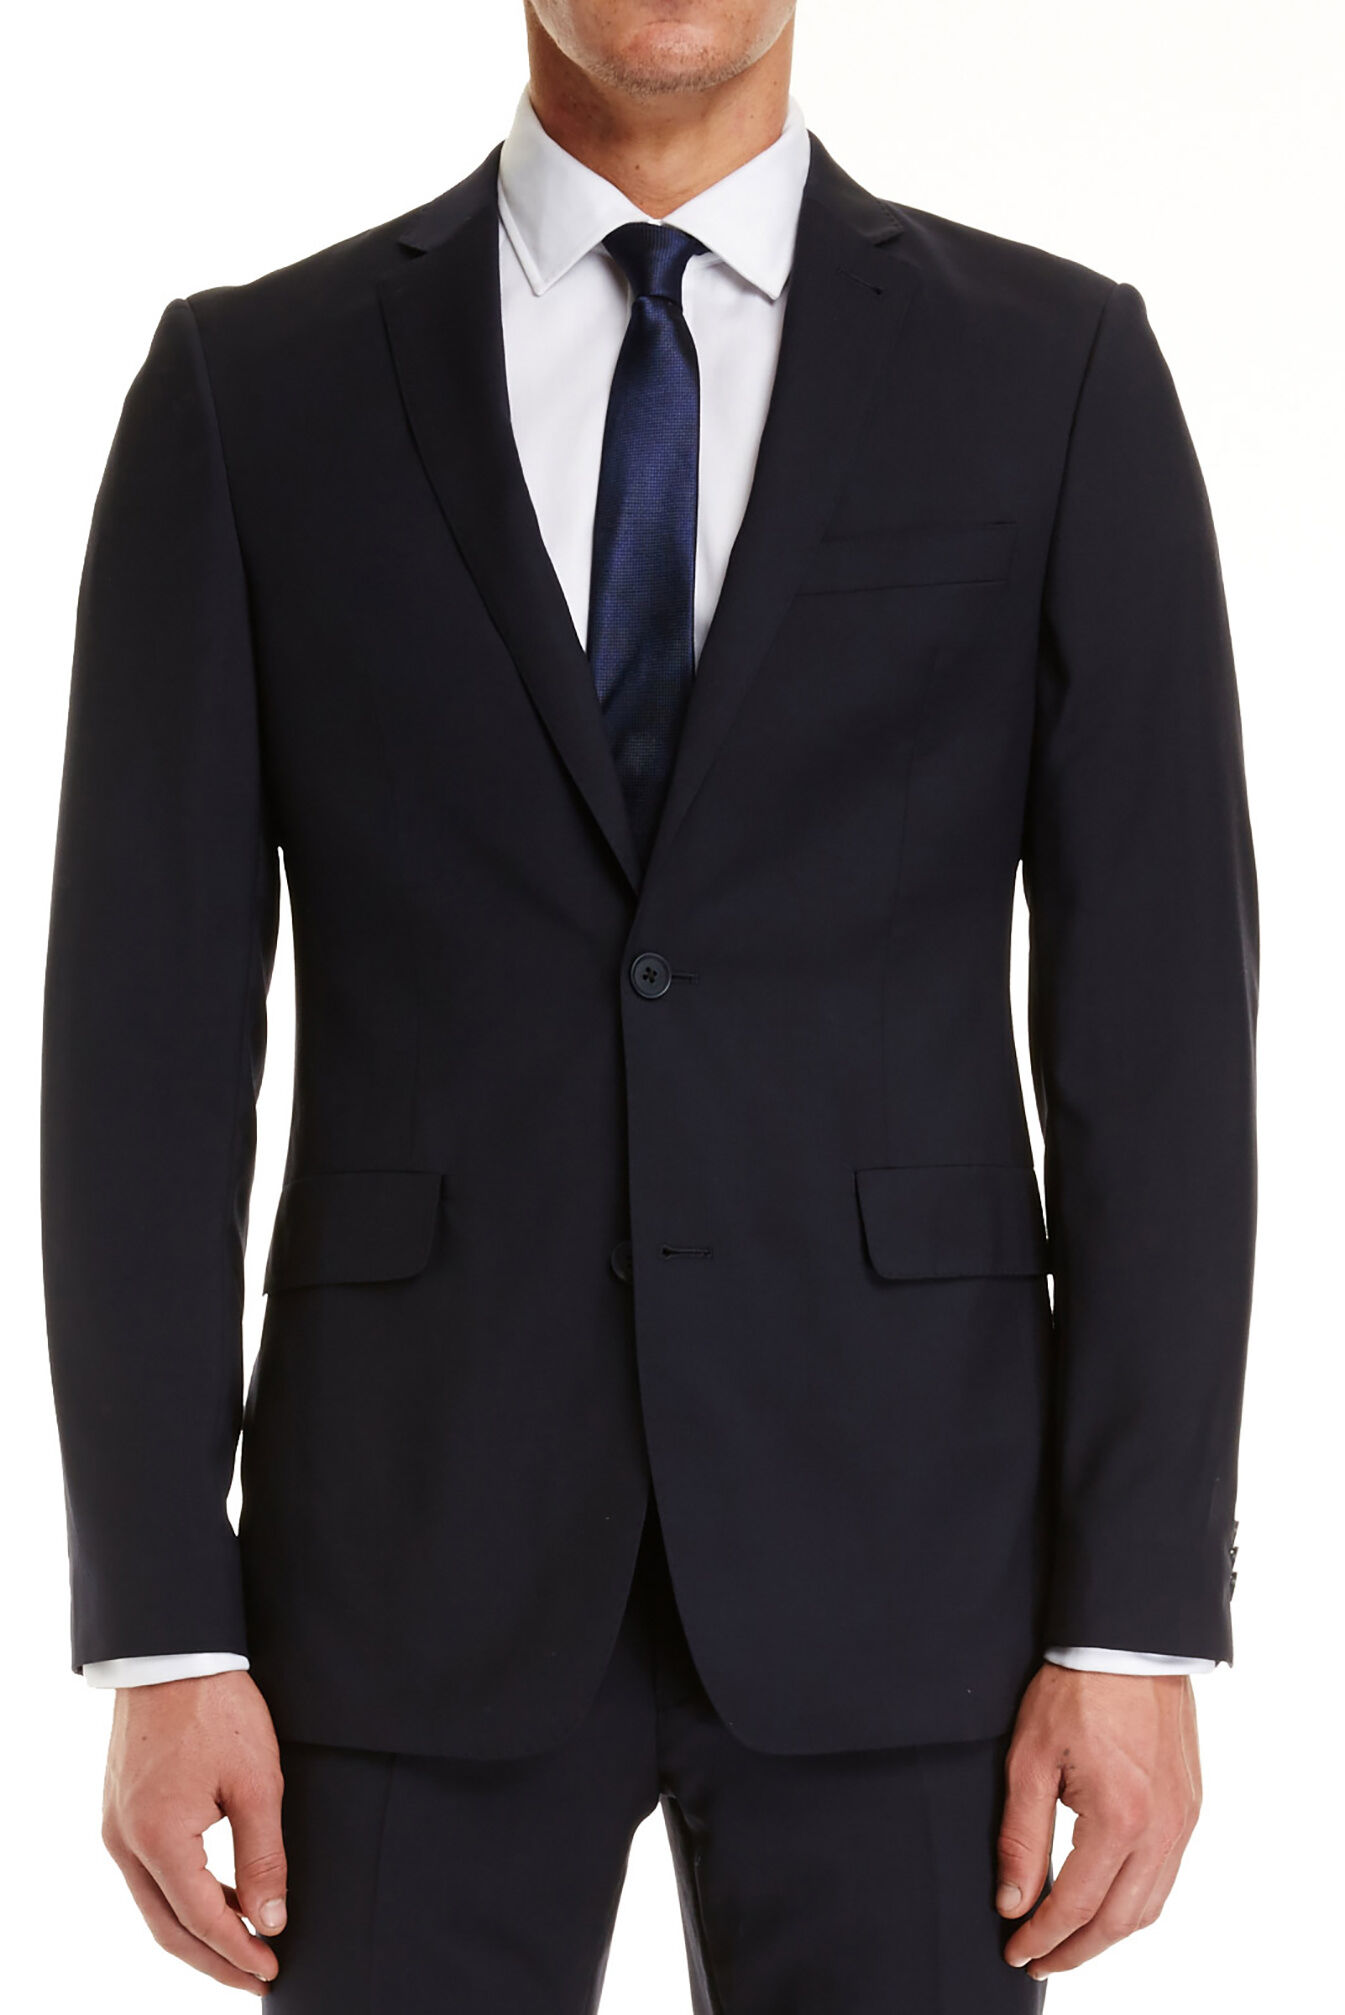 saba 236621 collins suit ss edition jacketnavy42107